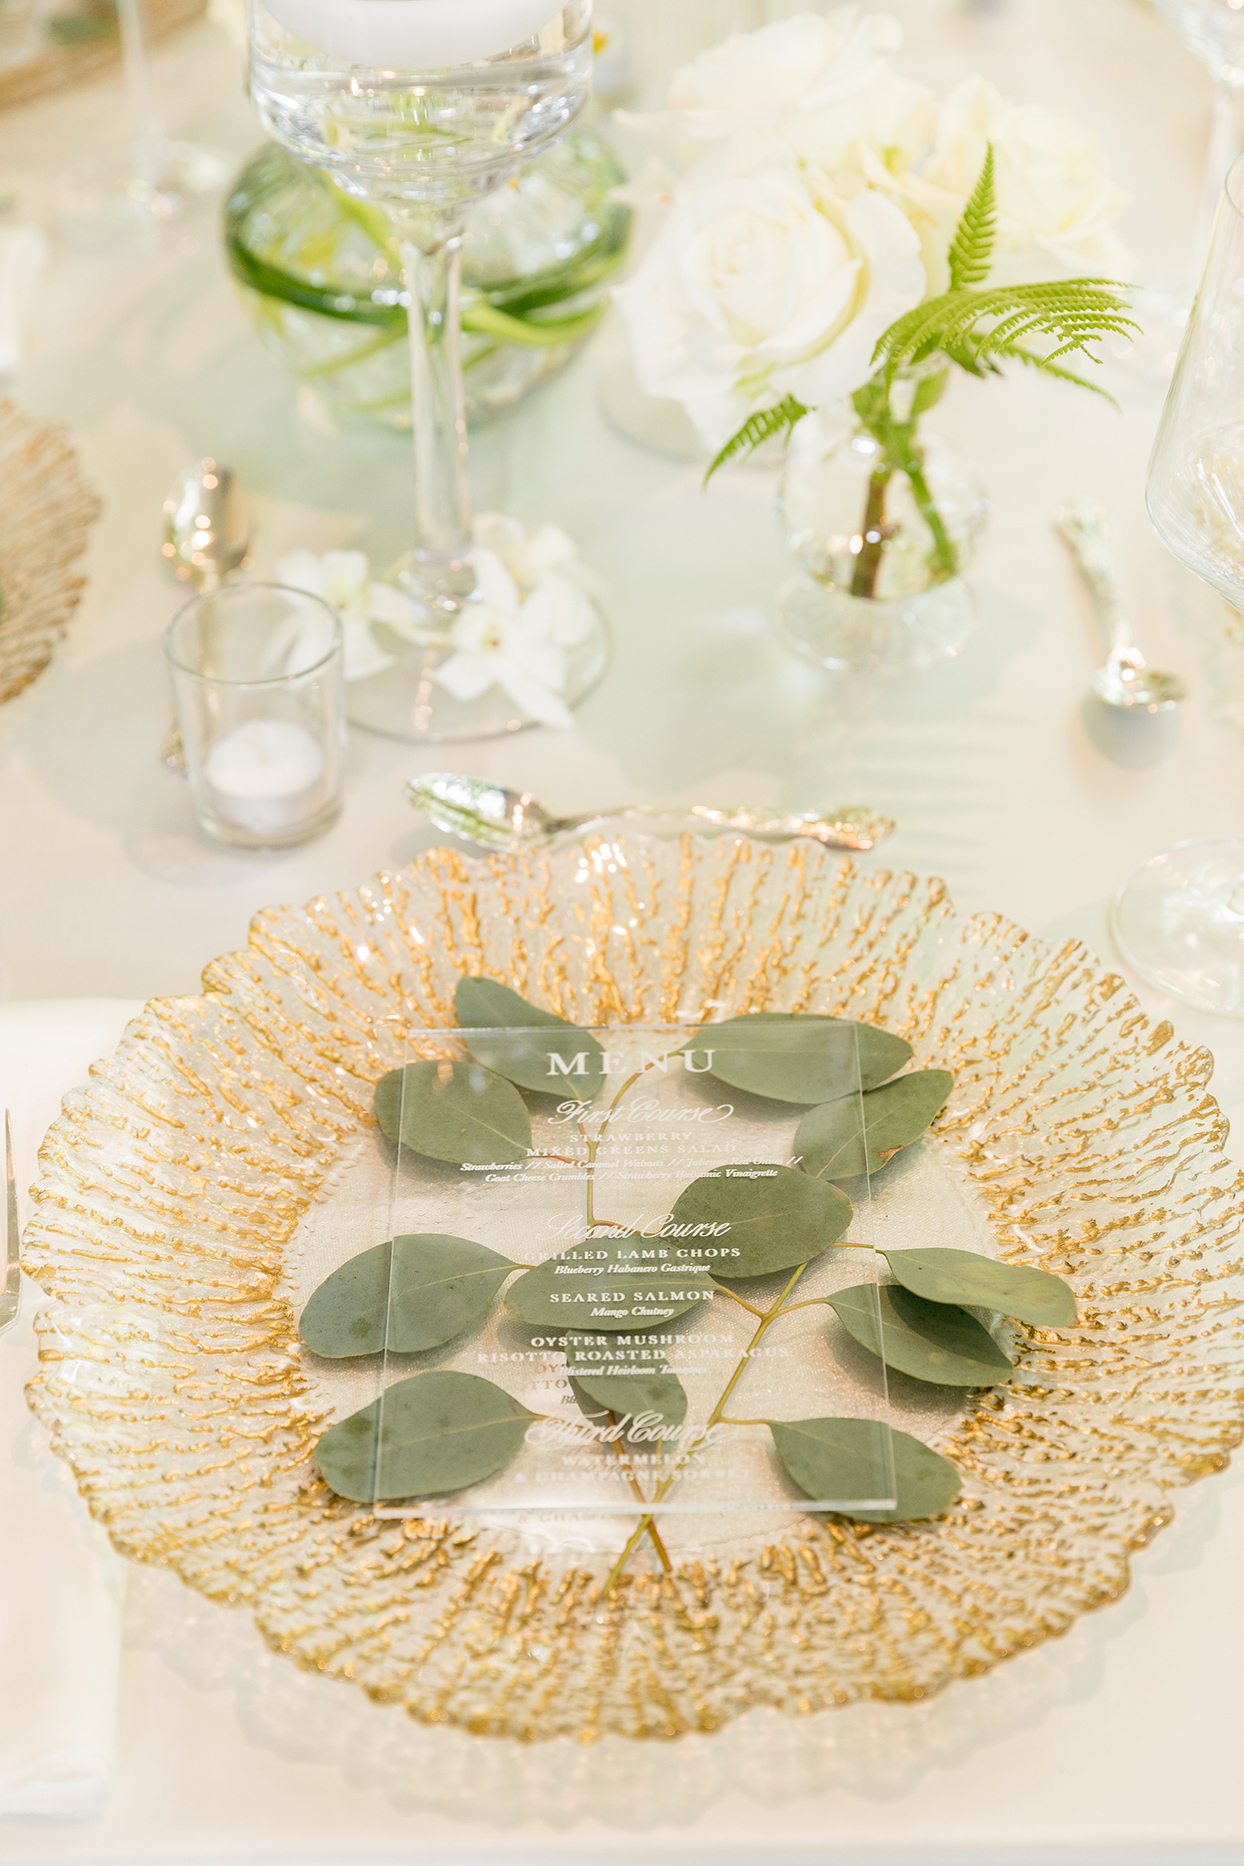 crystal themed wedding reception placesettings